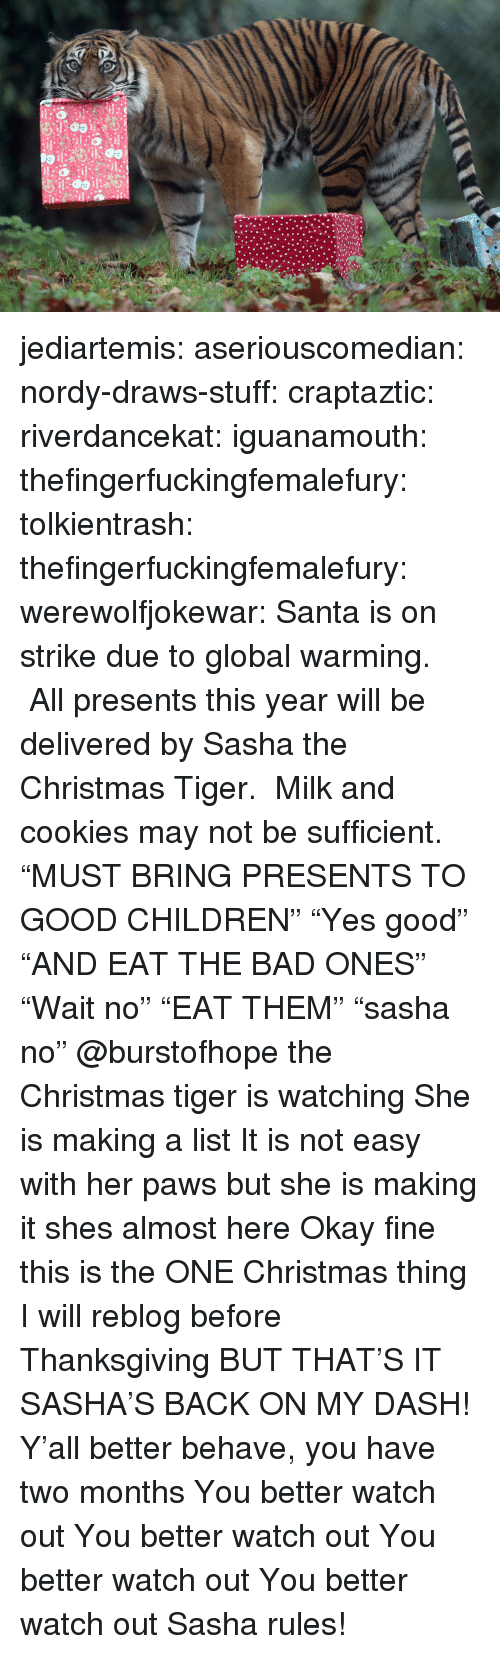 """sasha: jediartemis:  aseriouscomedian:  nordy-draws-stuff:   craptaztic:  riverdancekat:  iguanamouth:  thefingerfuckingfemalefury:  tolkientrash:  thefingerfuckingfemalefury:  werewolfjokewar:  Santa is on strike due to global warming. All presents this year will be delivered by Sasha the Christmas Tiger. Milk and cookies may not be sufficient.  """"MUST BRING PRESENTS TO GOOD CHILDREN"""" """"Yes good"""" """"AND EAT THE BAD ONES""""  """"Wait no"""" """"EAT THEM"""" """"sasha no""""   @burstofhope the Christmas tiger is watching  She is making a list  It is not easy with her paws but she is making it   shes almost here   Okay fine this is the ONE Christmas thing I will reblog before Thanksgiving BUT THAT'S IT  SASHA'S BACK ON MY DASH!  Y'all better behave, you have two months   You better watch out You better watch out You better watch out You better watch out  Sasha rules!"""